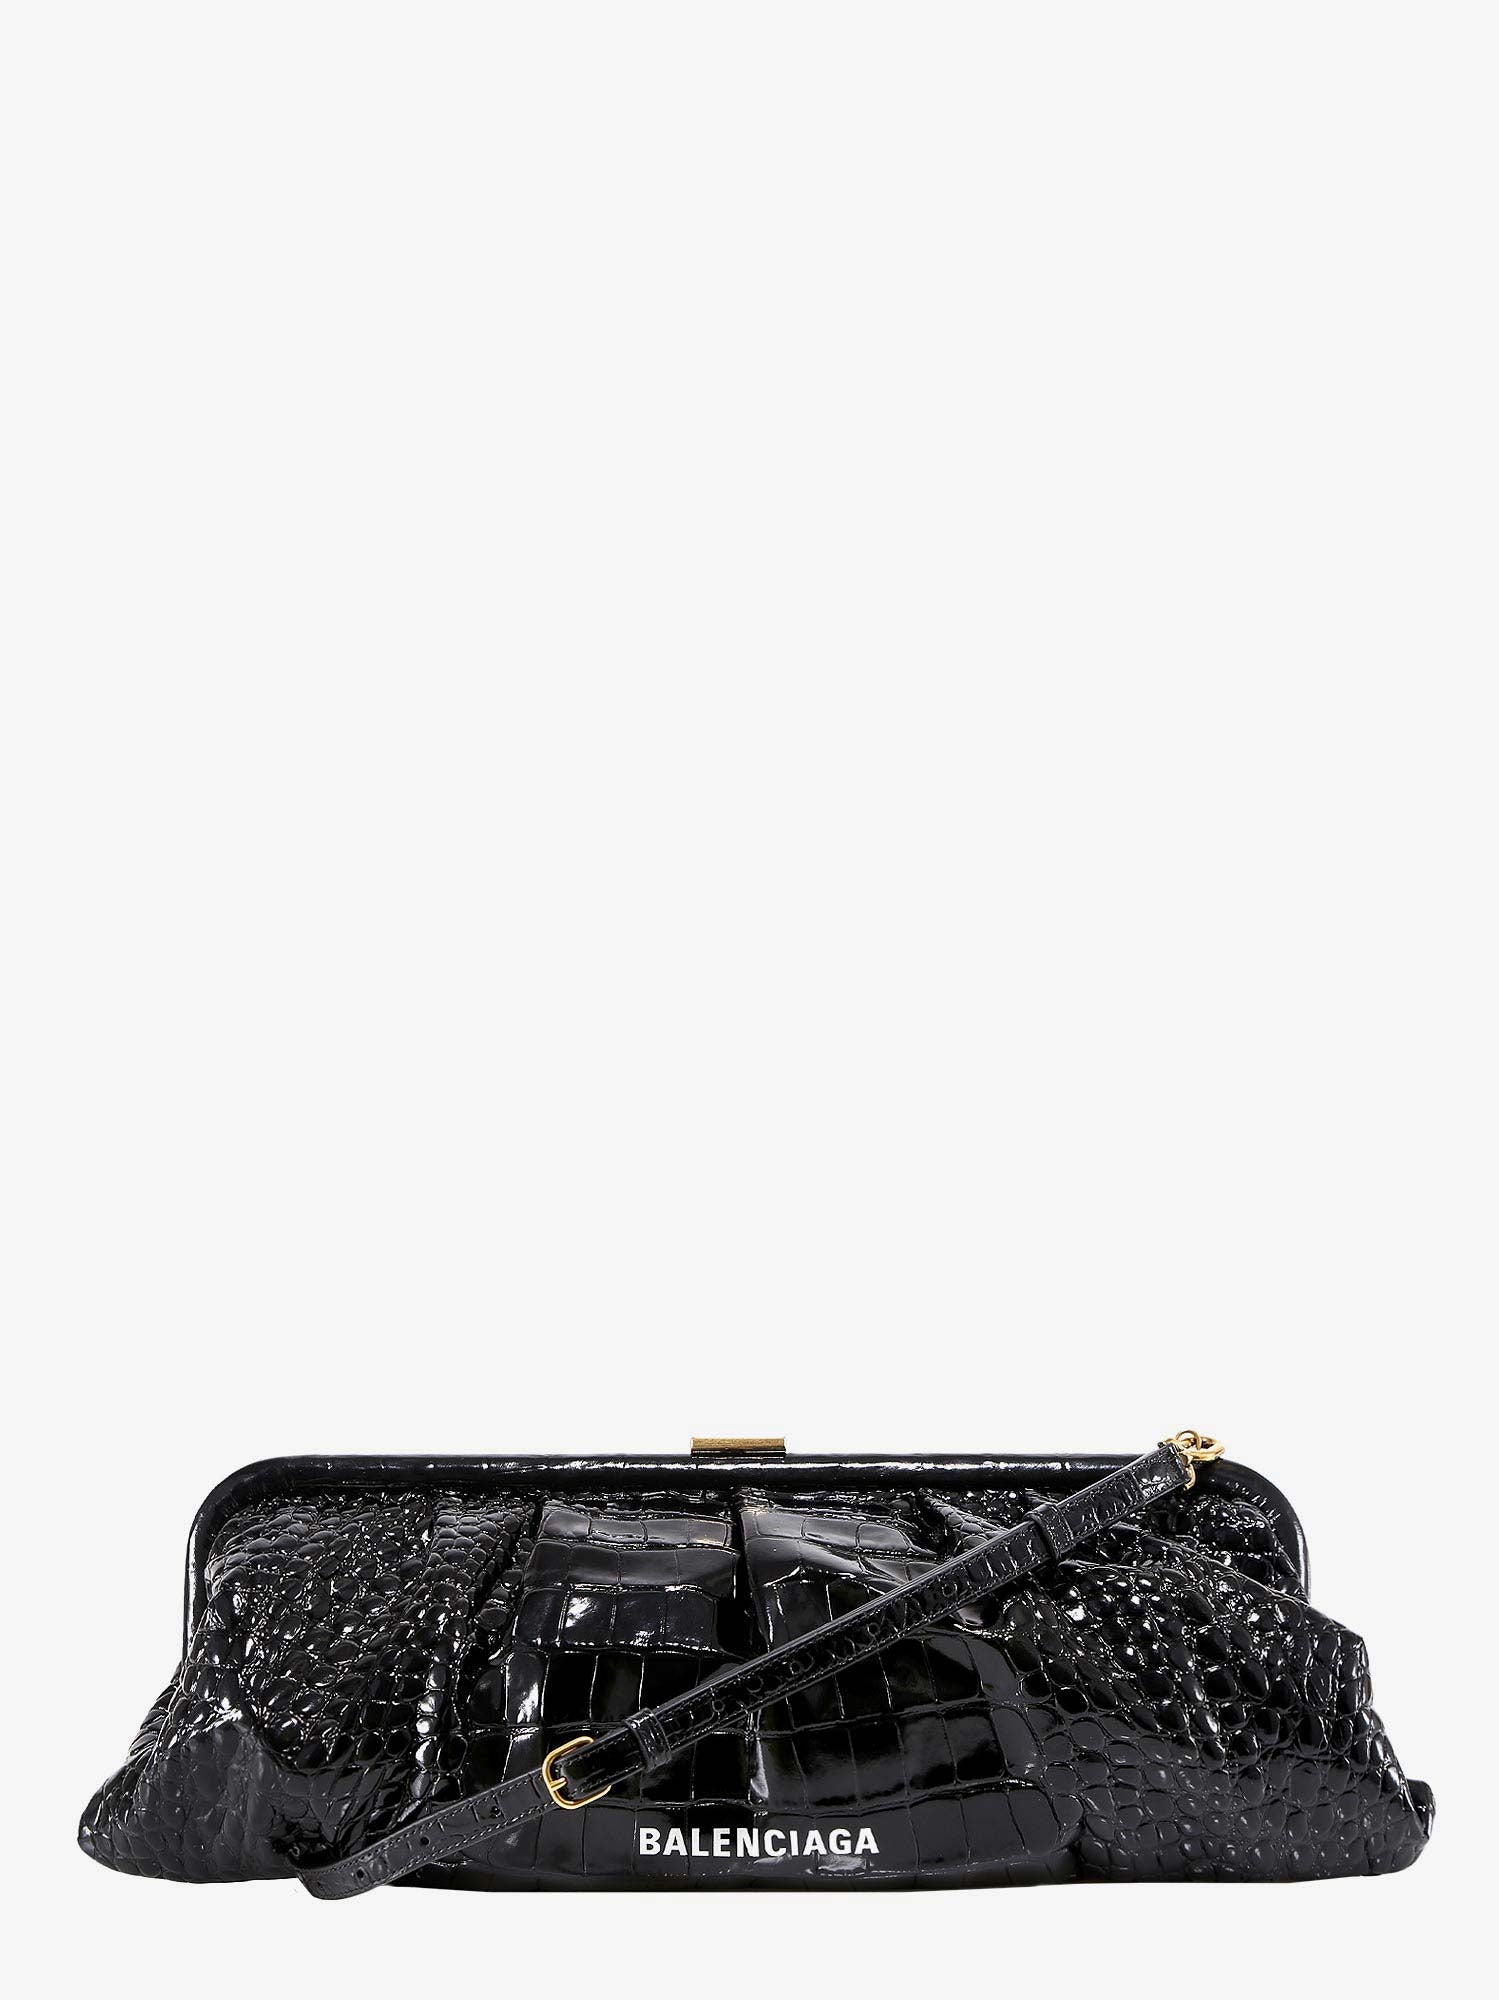 Balenciaga Clutch Cloud In Black